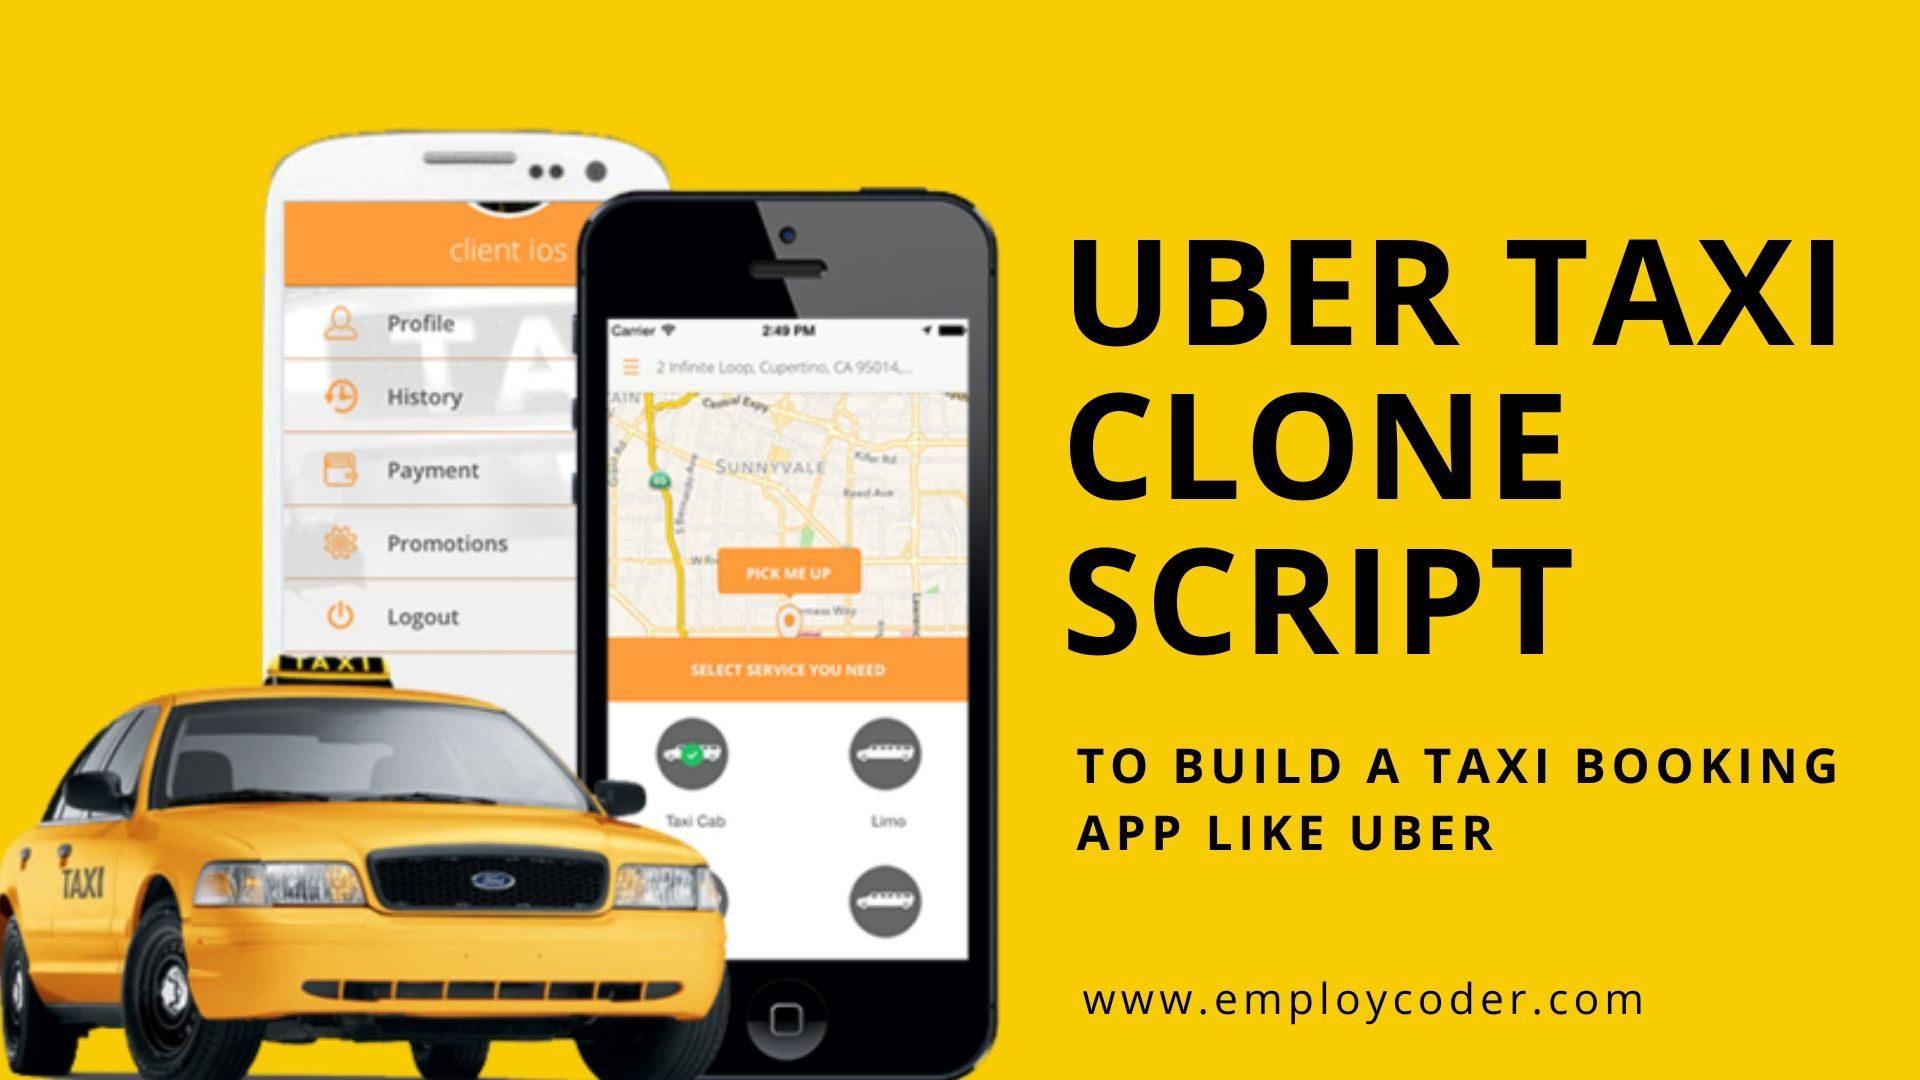 Uber Taxi Clone Script - Start a Taxi Booking App like Uber